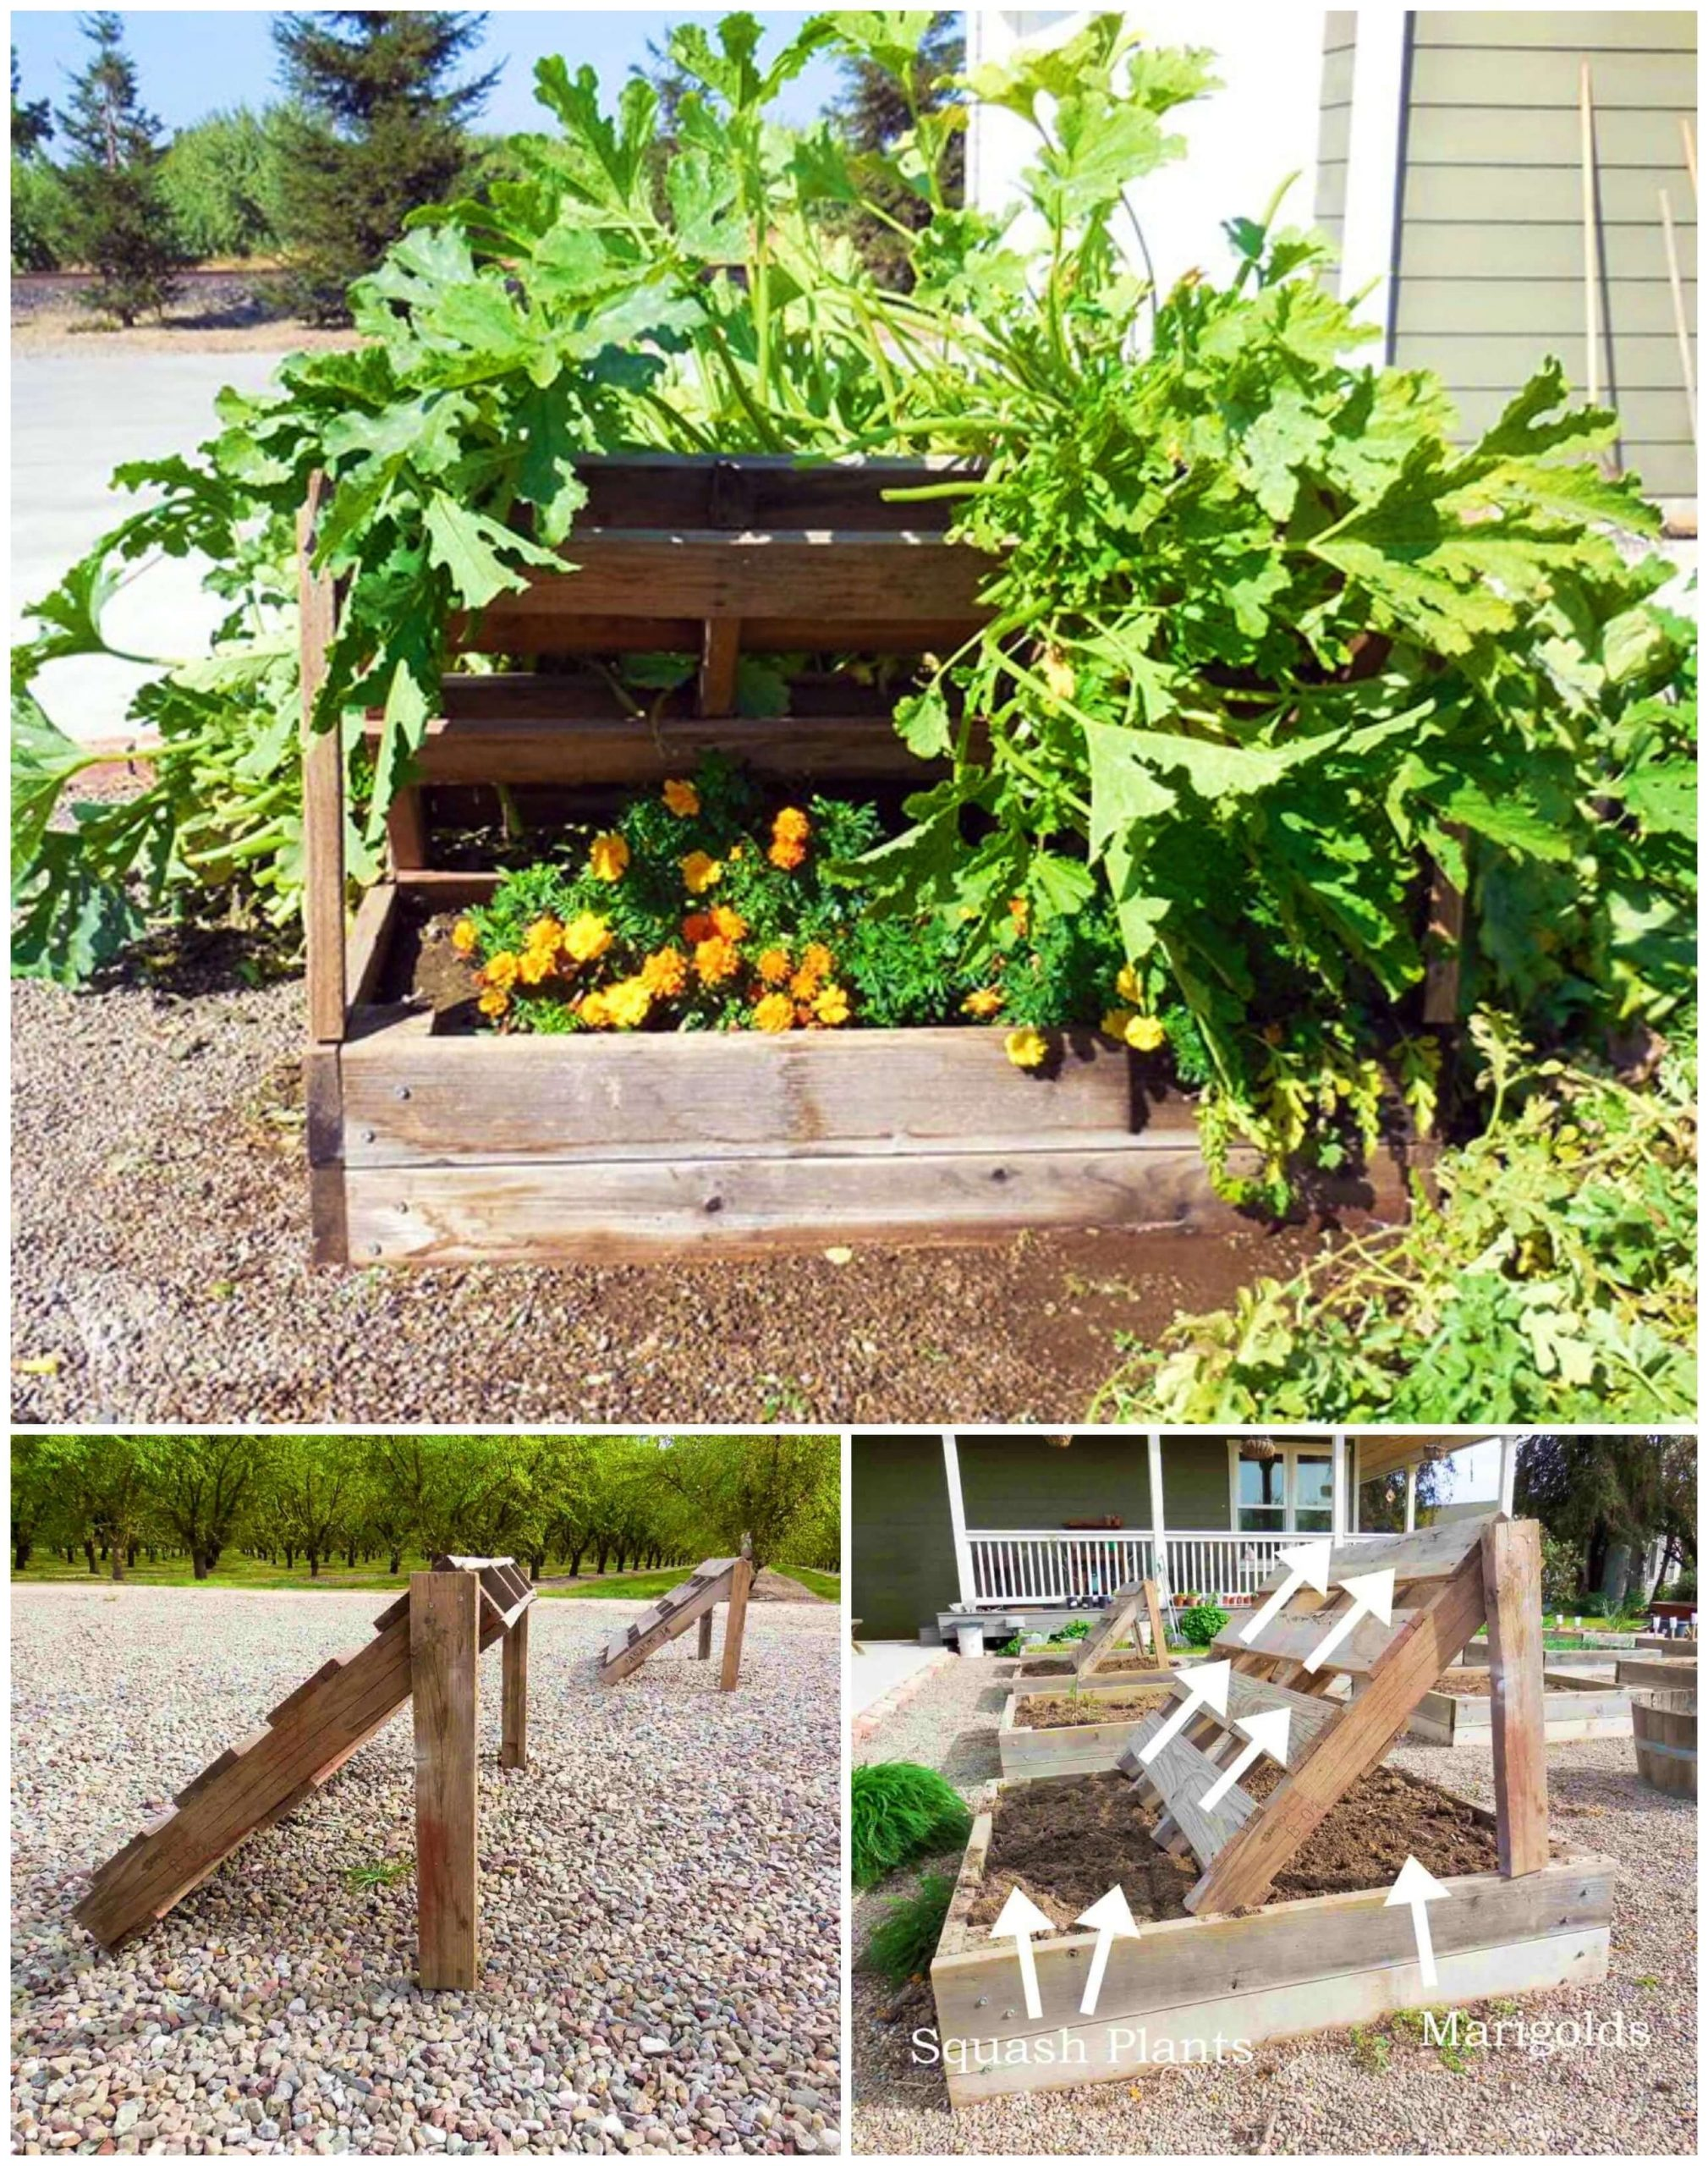 DIY Squash Growing Racks Out Of Pallets